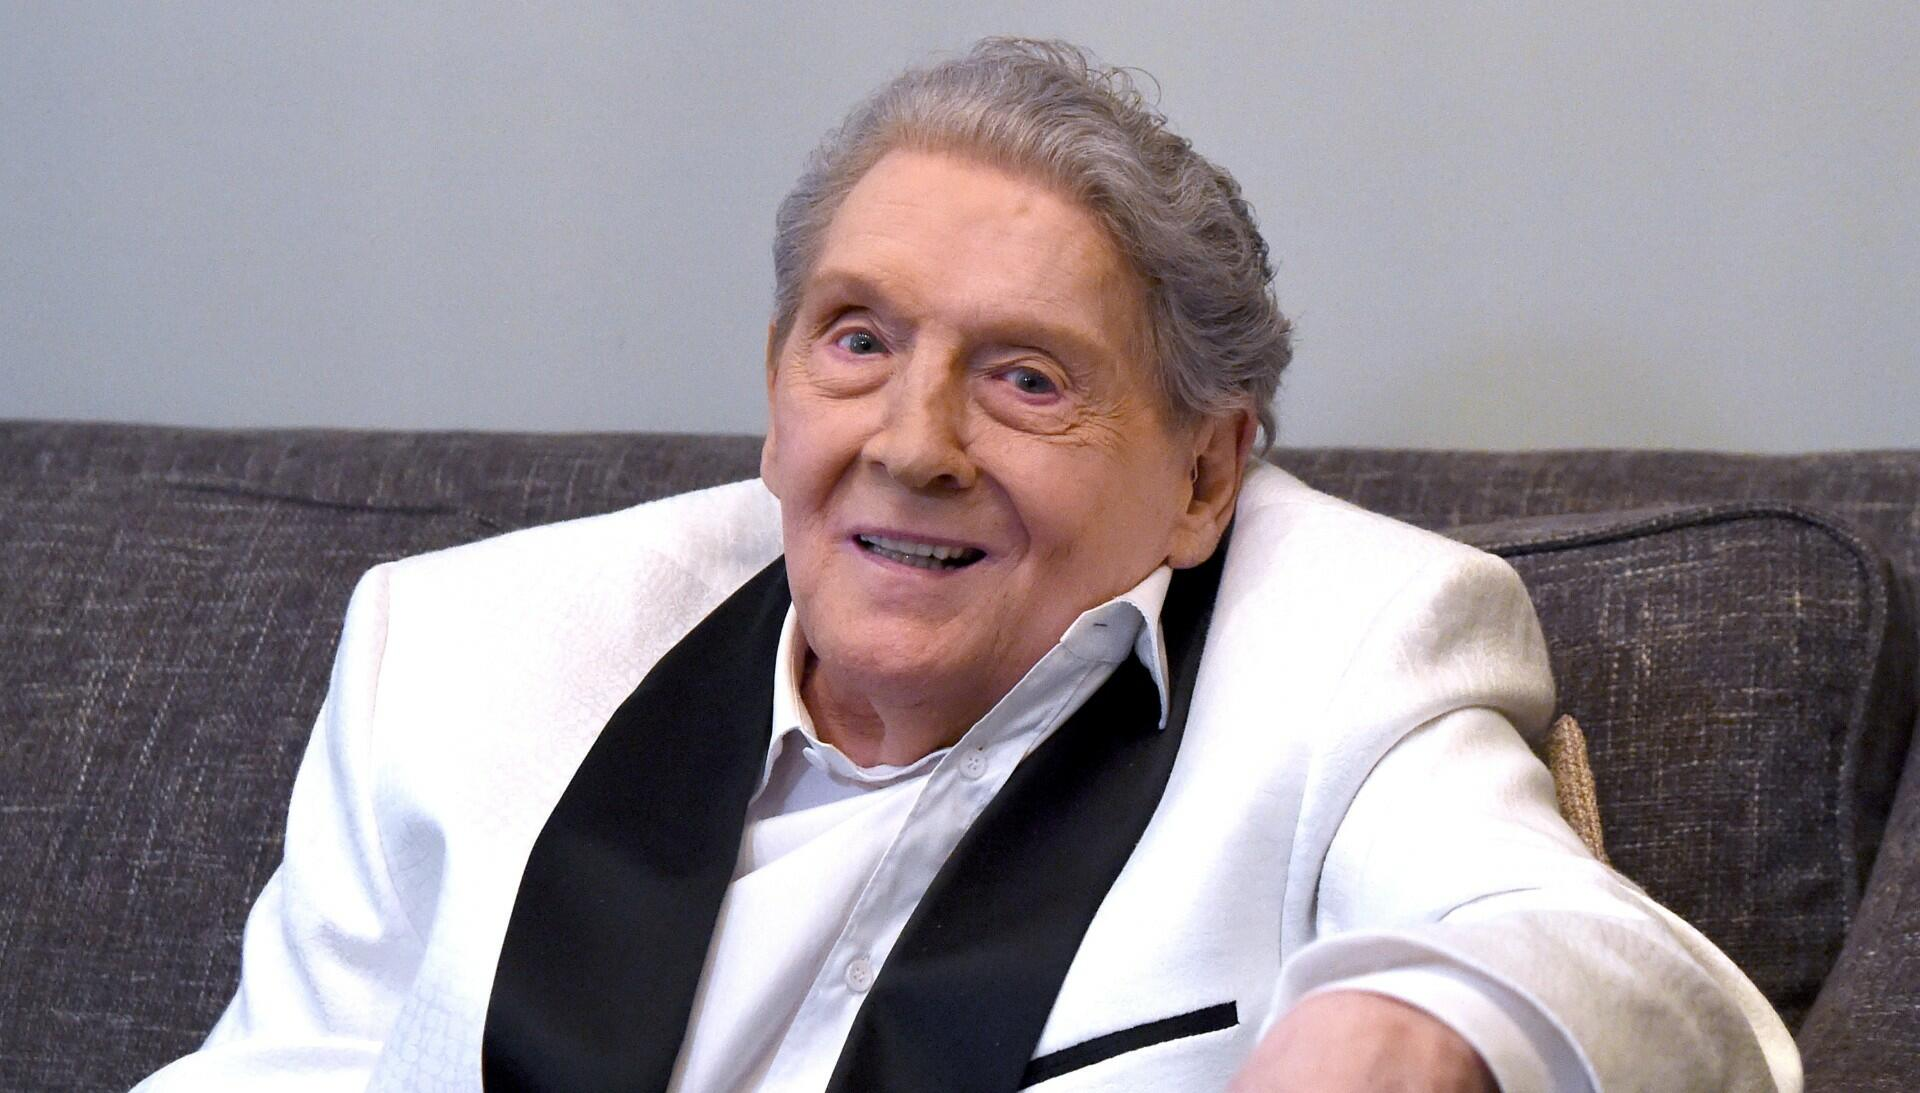 Jerry Lee Lewis Returns To Music After Miraculous Stroke Recovery